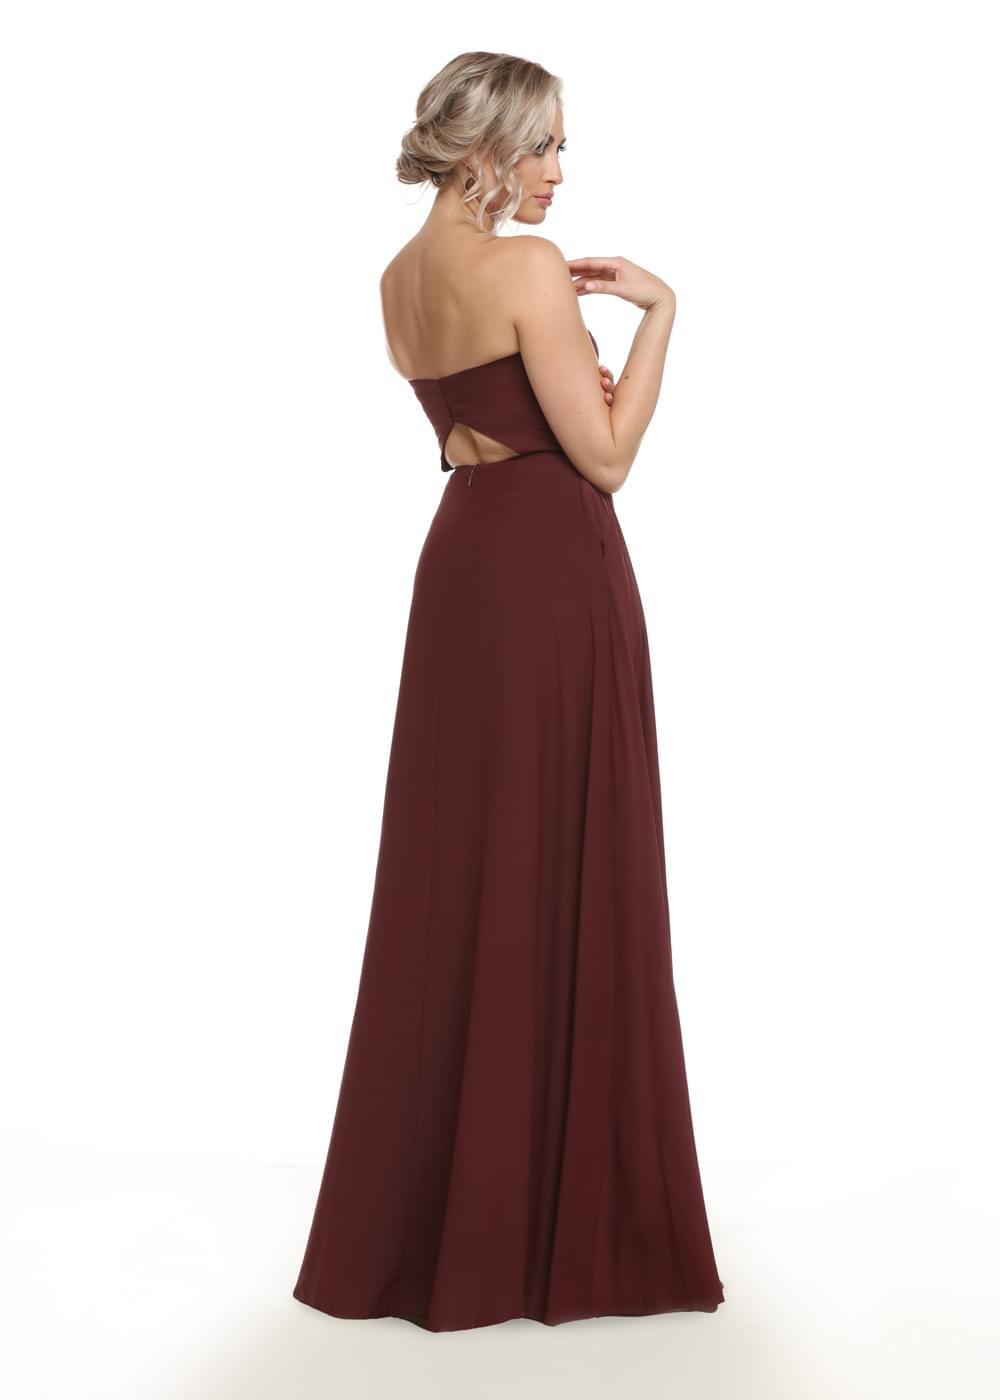 TH-83025 TH Bridesmaid Dresses By Ashdon